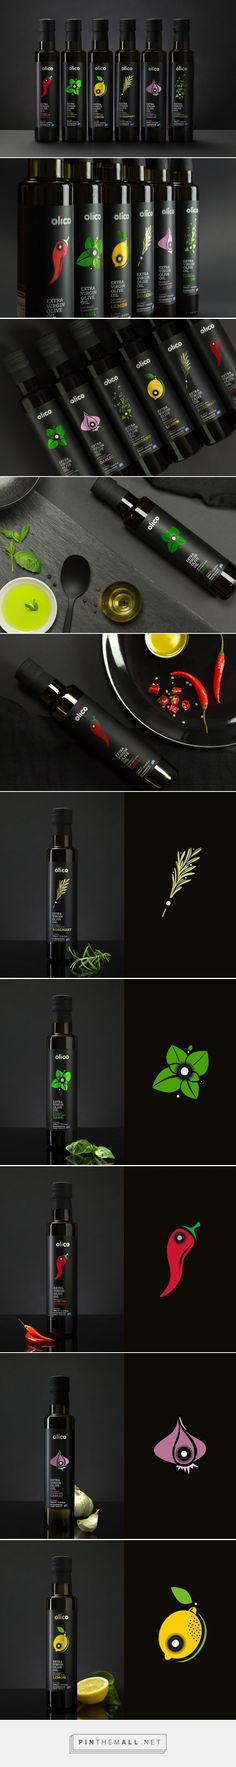 Olico Flavors | Gourmet Olive Oil packaging design by Aspa Chroneou / Brand Identity Design - https://www.packagingoftheworld.com/2018/02/olico-flavors-gourmet-olive-oils.html